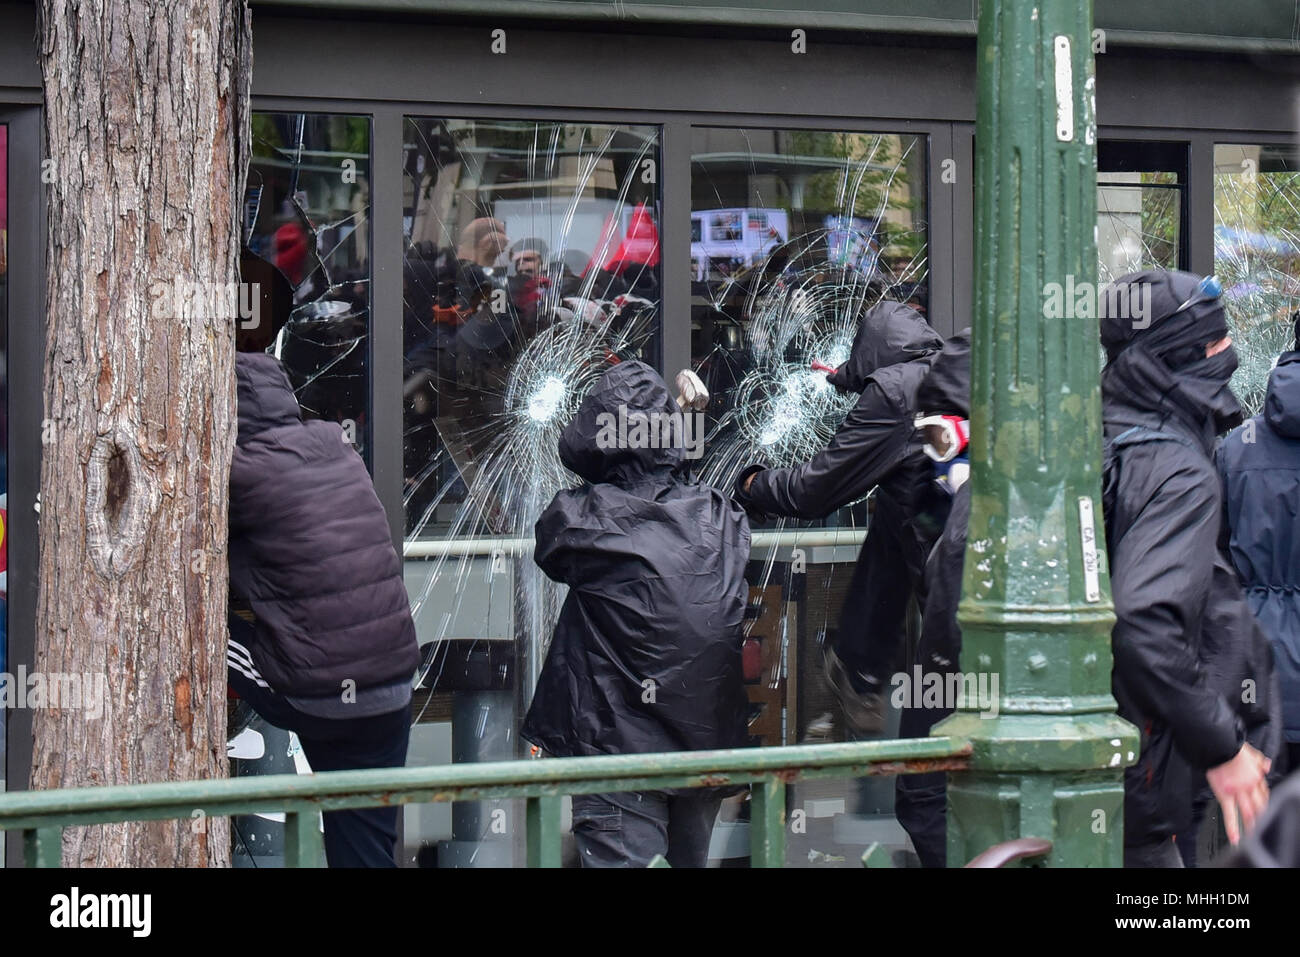 Paris, France. 1st May 2018. Paris police clash with protesters as demonstrations turn violent. PICTURED: 'Black Bloc' protesters smash windows of a McDonald's resturant. Credit: Peter Manning/Alamy Live News - Stock Image